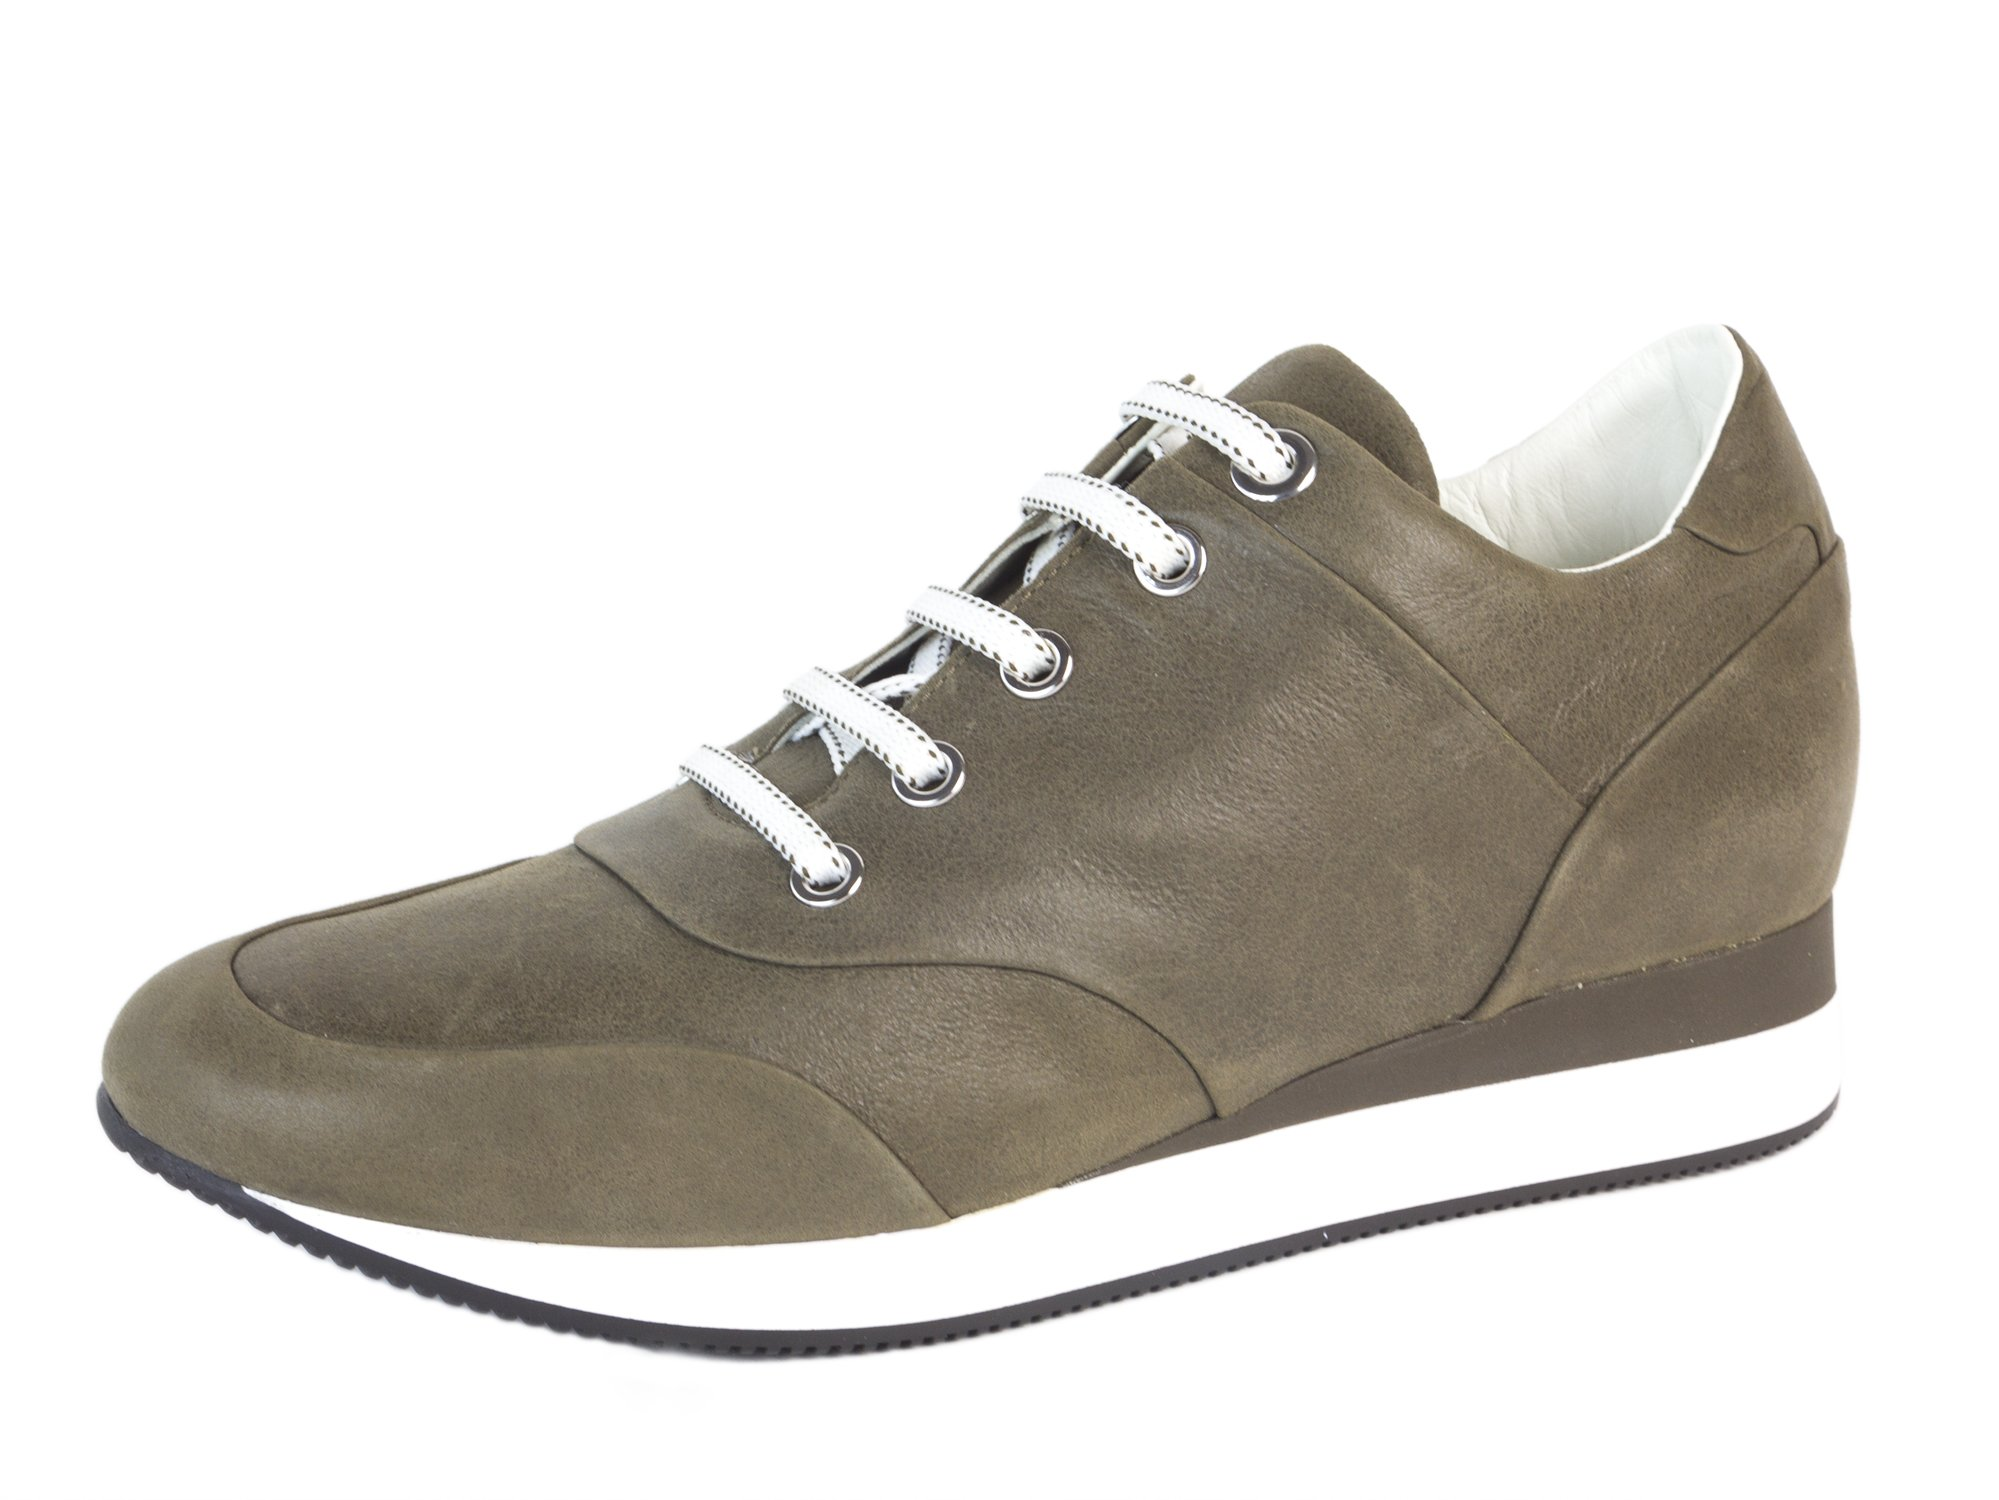 MaxMara Women's MM29 Leather Lace-up Sneakers US 7/IT 37 Khaki